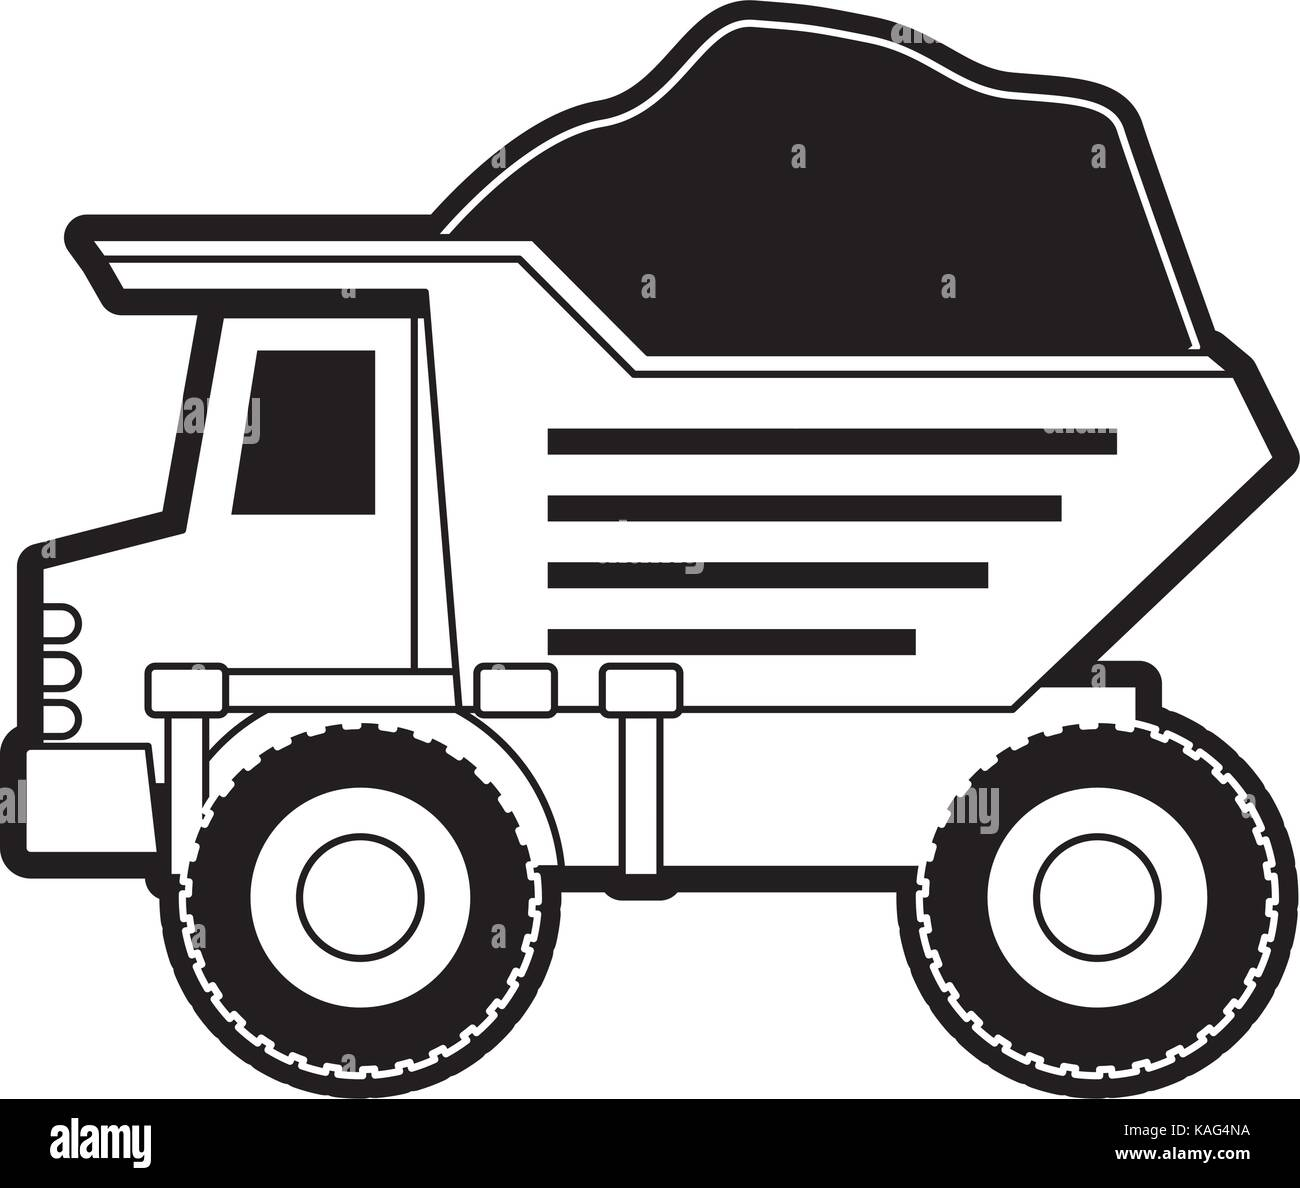 dump truck with rocks on monochrome silhouette - Stock Vector